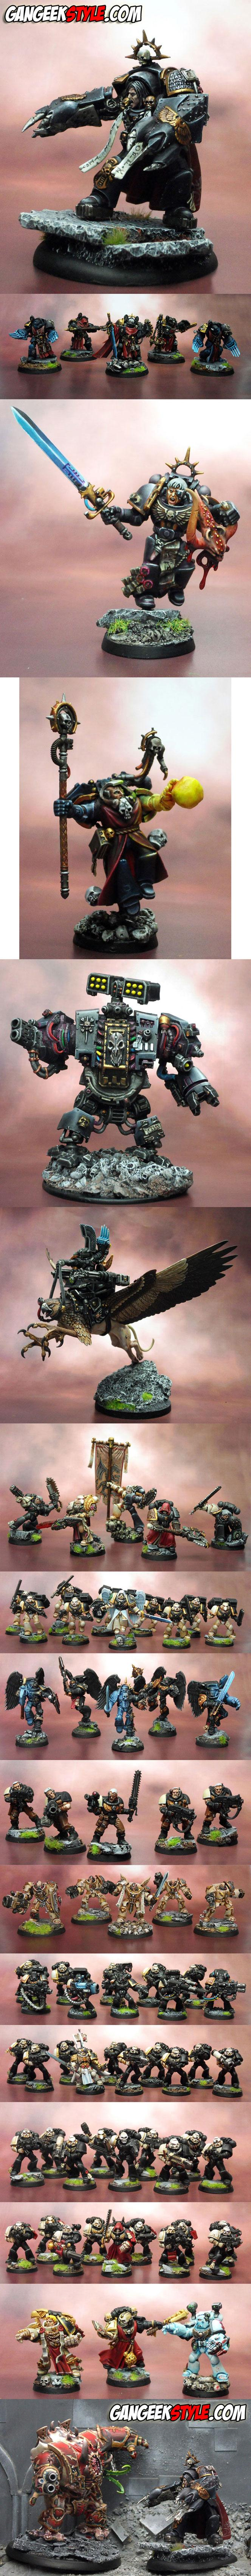 Commission, Conversion, Gangeekstyle, Kaiser, Space Marines